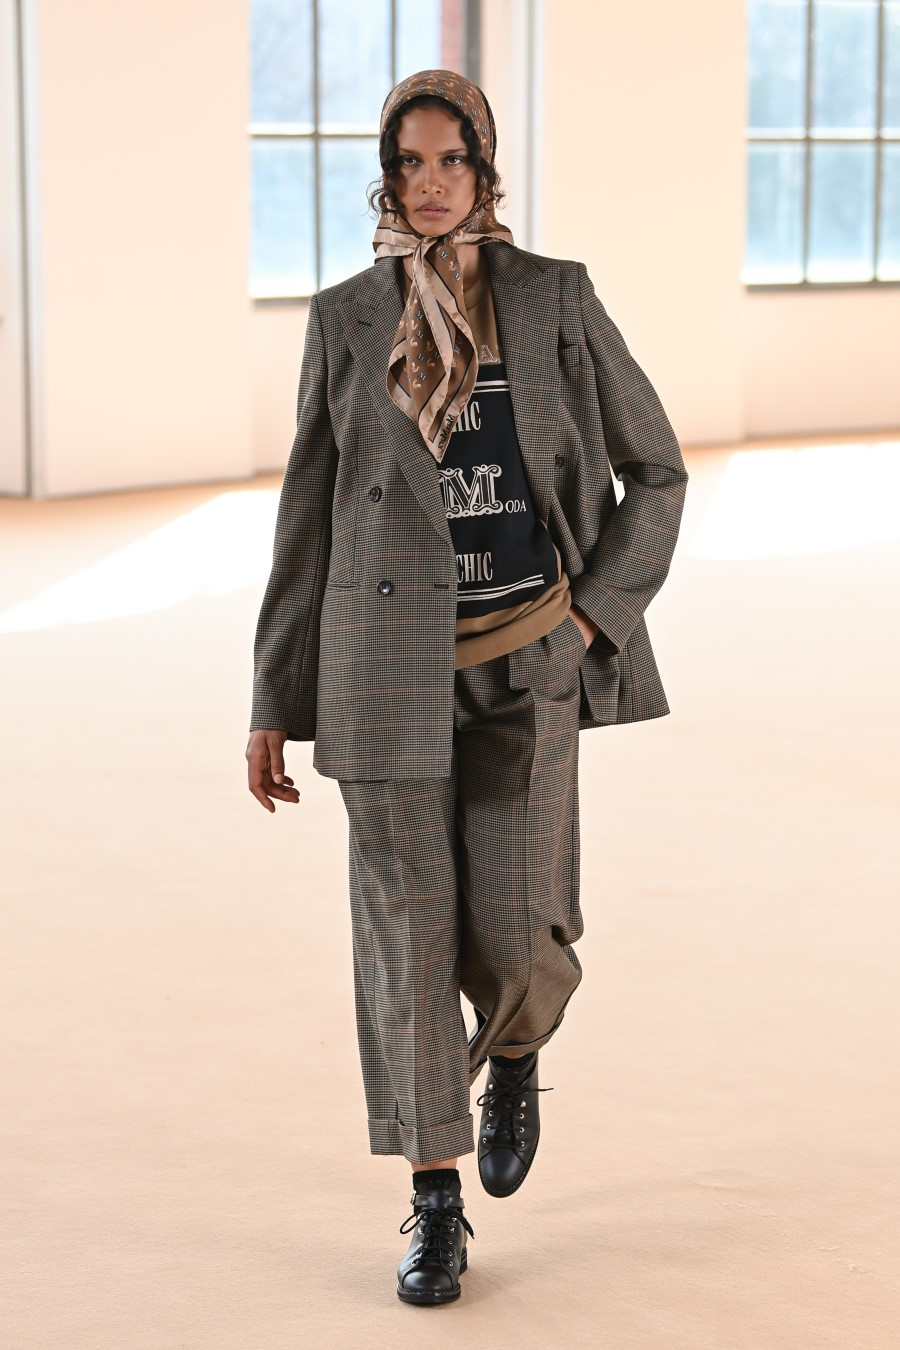 Max Mara Fall Winter 2021 - Milan Fashion WeekMax Mara Fall Winter 2021 - Milan Fashion Week